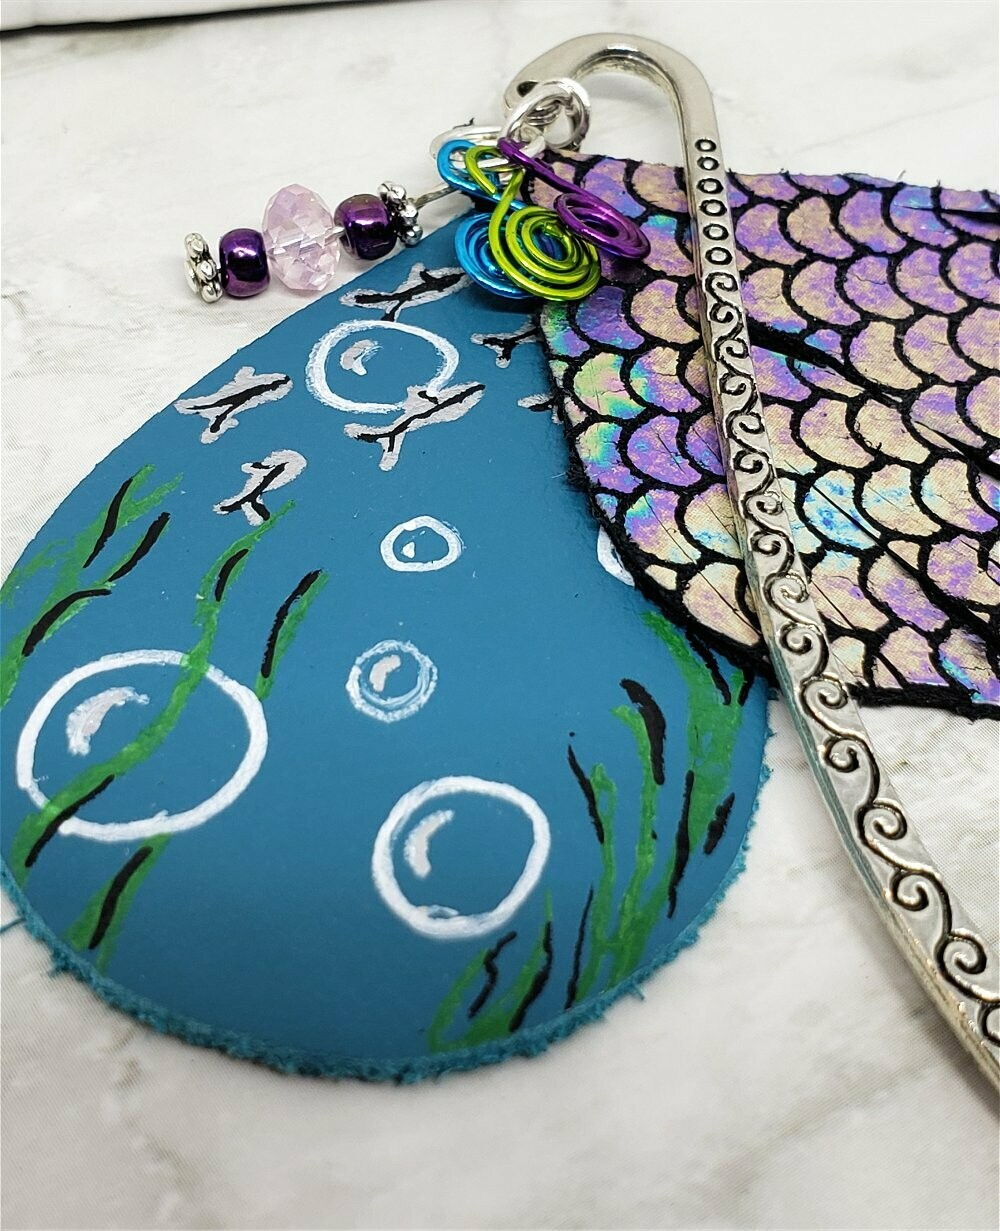 Mermaid Bookmark with Leather, Glass Beads, and Colored Metal Swirls